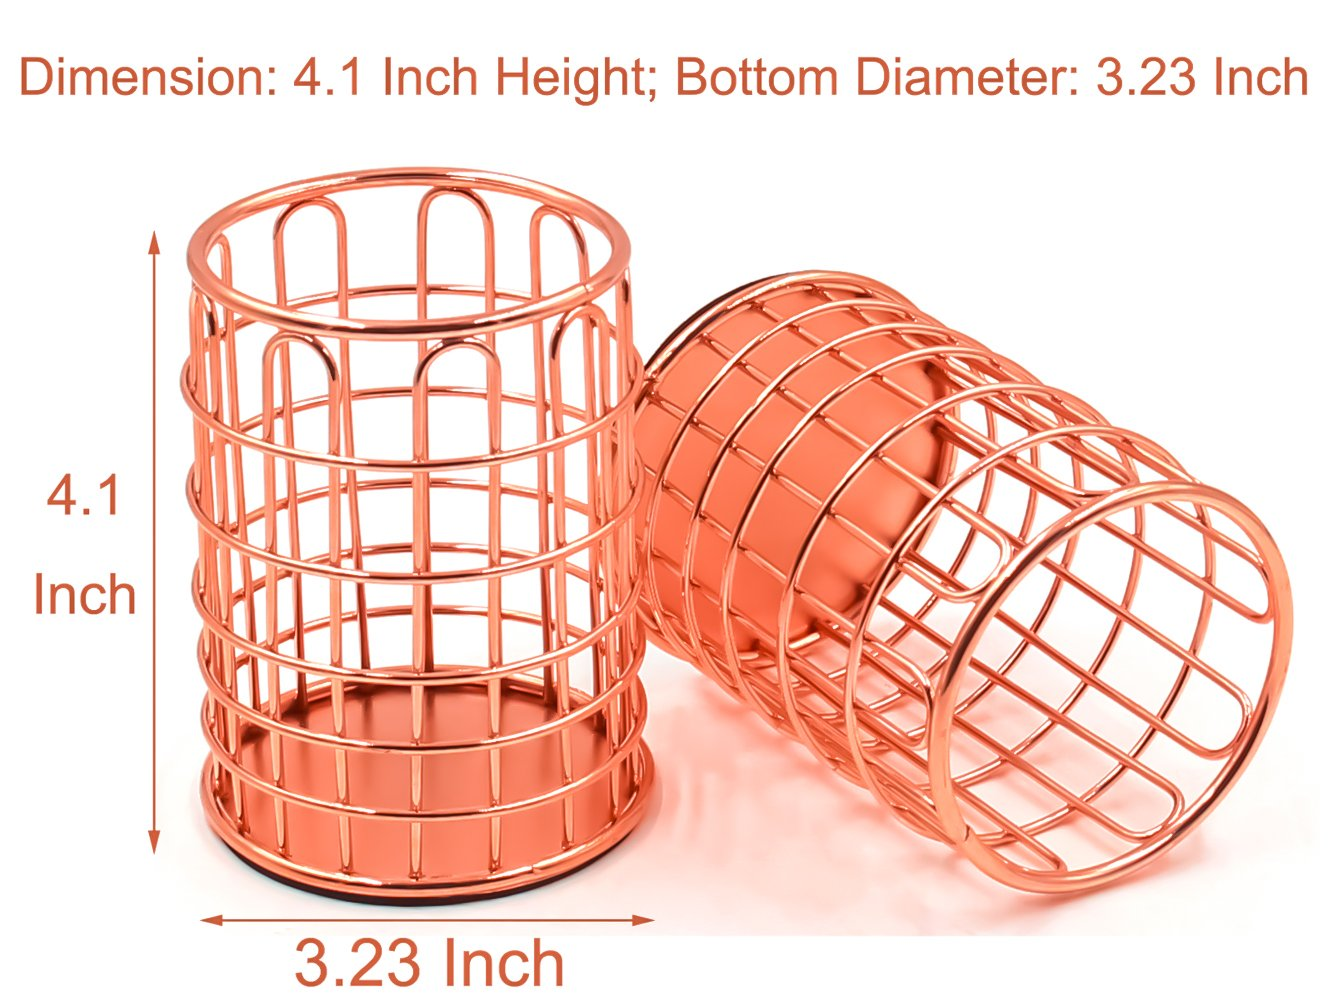 Superbpag Wire Metal Desktop Pencil Holder, Set of 2, Rose Gold by Superbpag (Image #2)